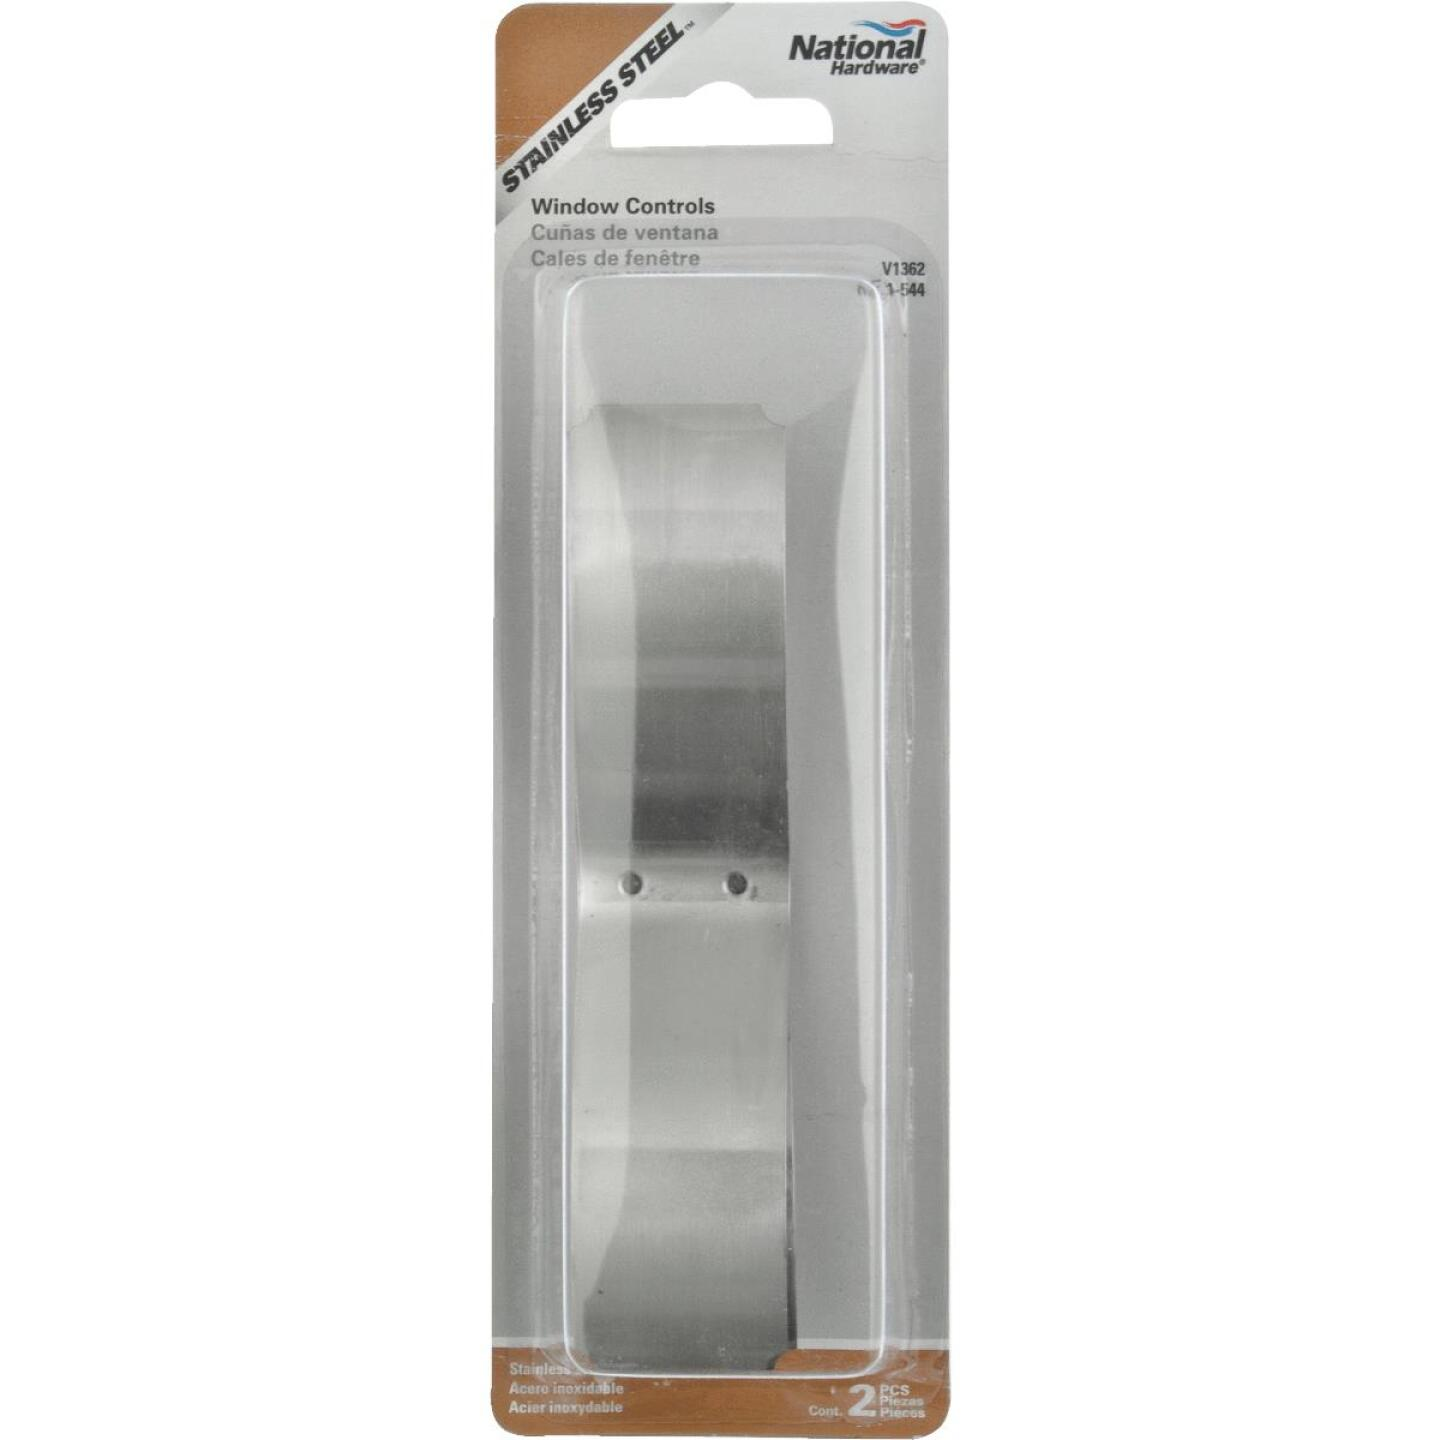 National Stainless Steel Window Sash Spring Control (2-Pack) Image 2